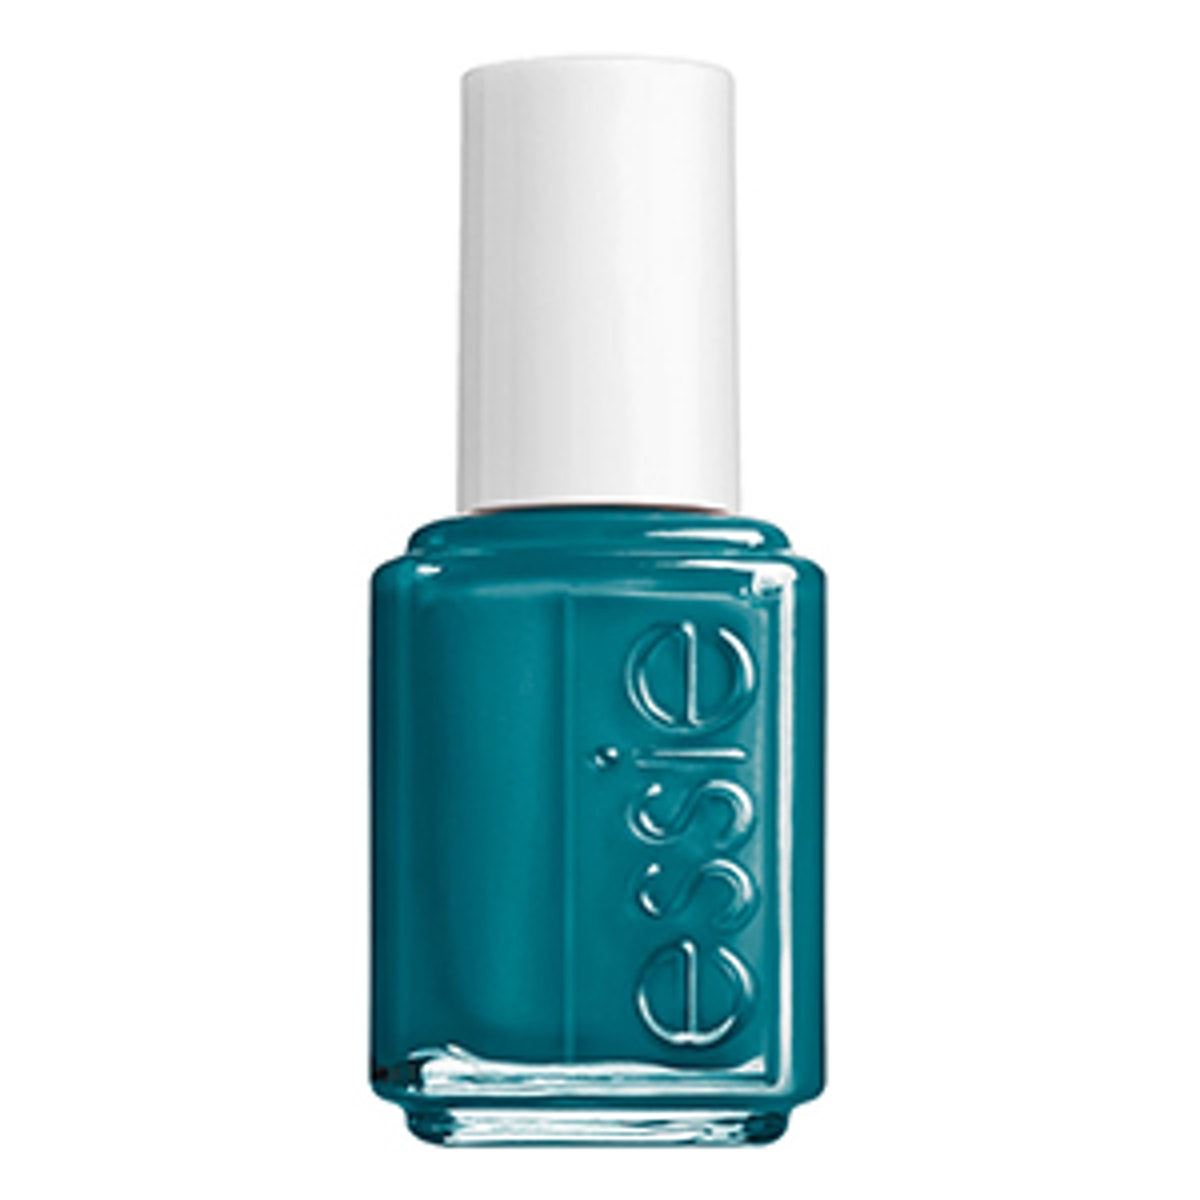 Nail Polish in Go Overboard